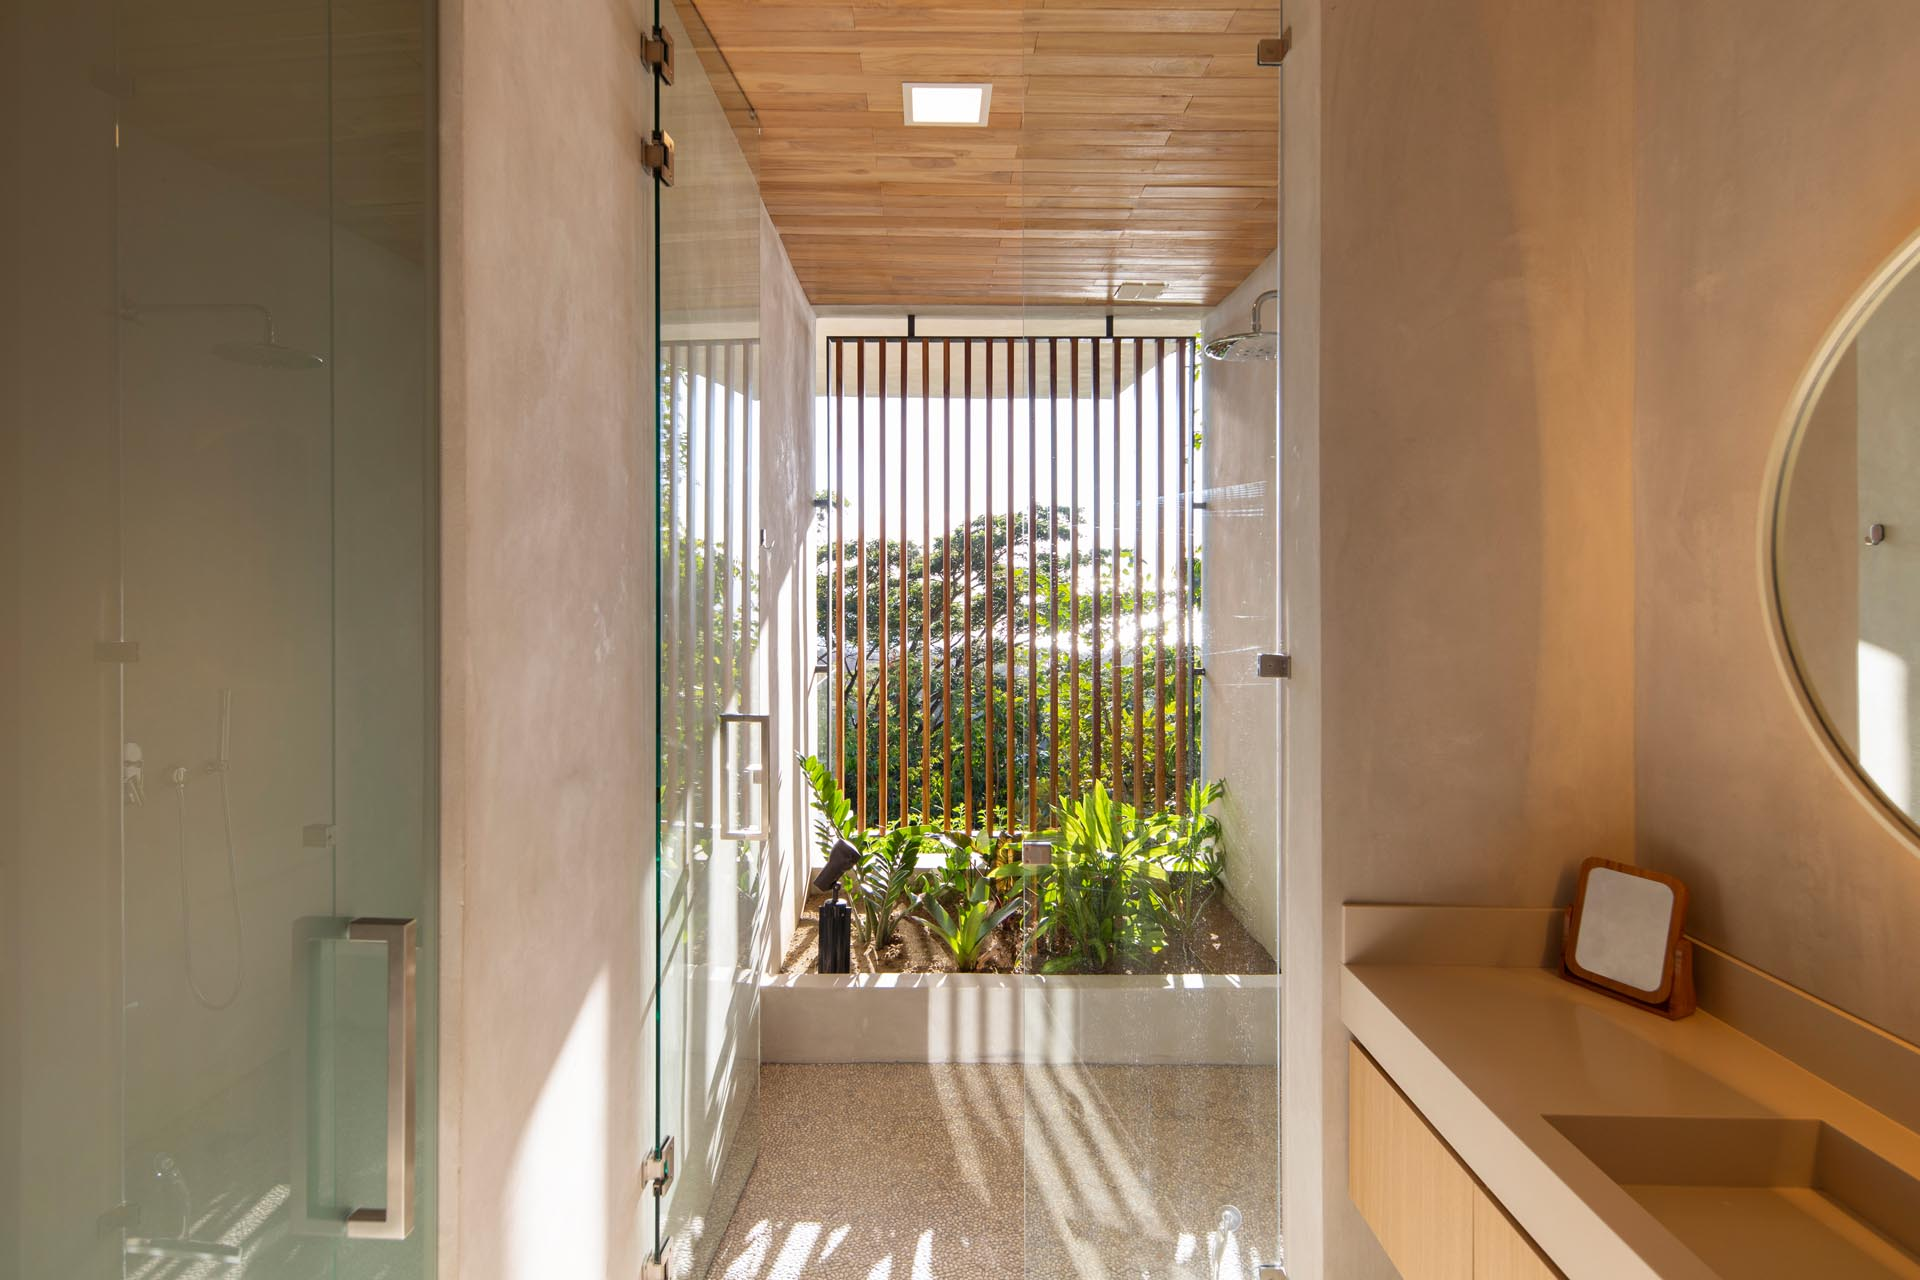 In this modern bathroom, the shower is located in a semi-outdoor room with plants and wood slat screen.